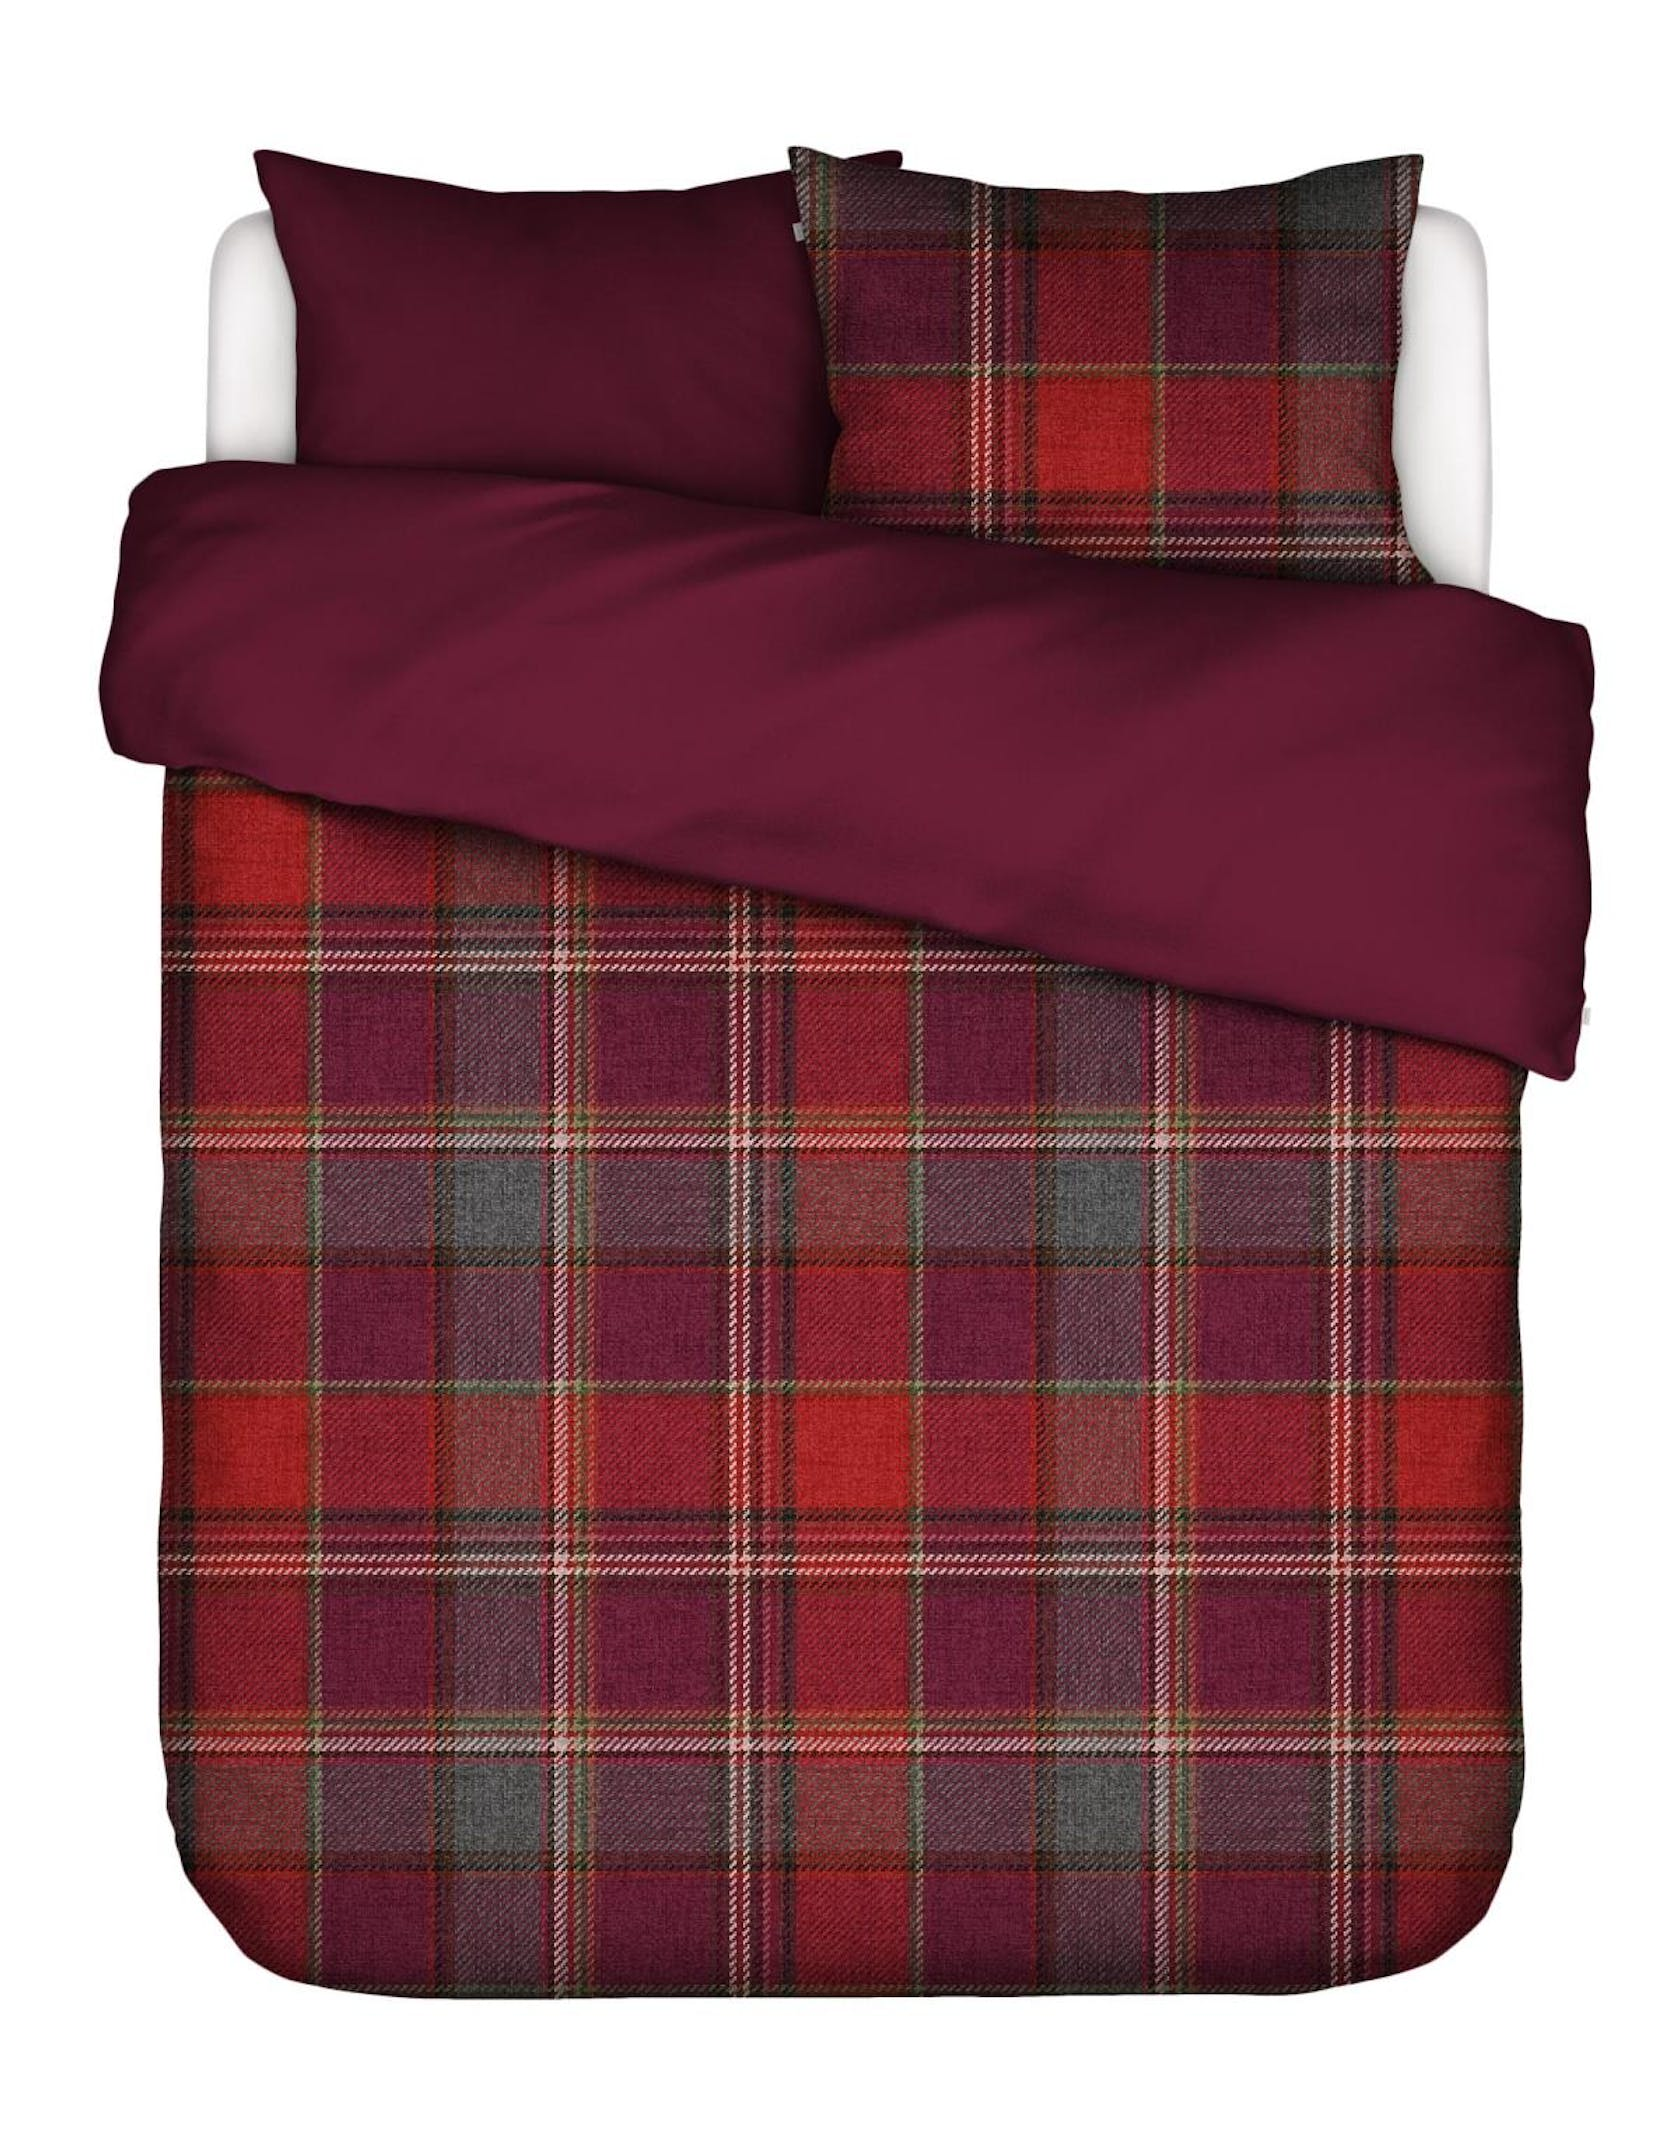 ESSENZA Beau Cherry Duvet cover 260 x 220